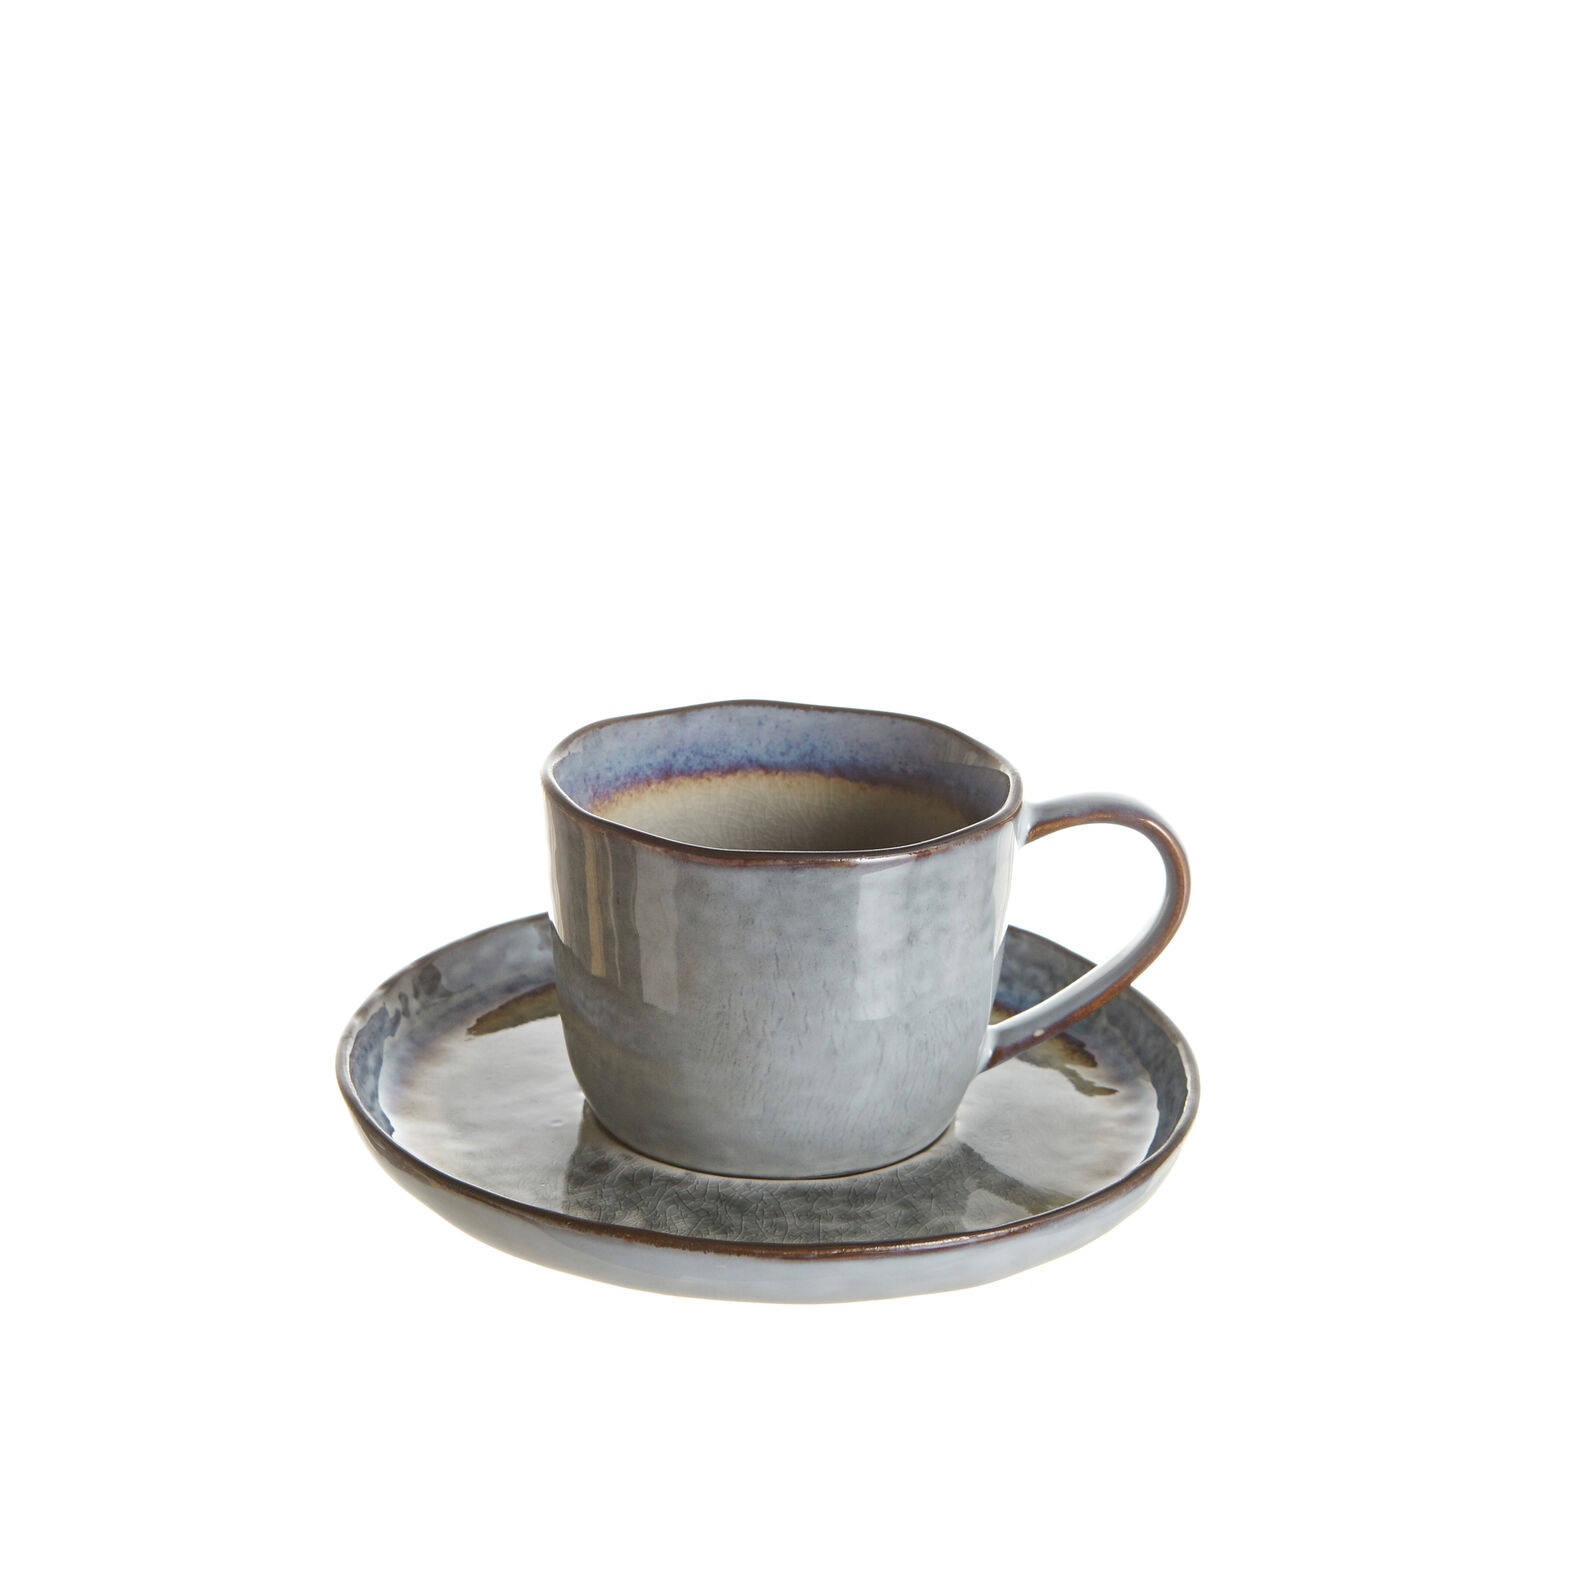 Stoneware tea cup with reactive glaze